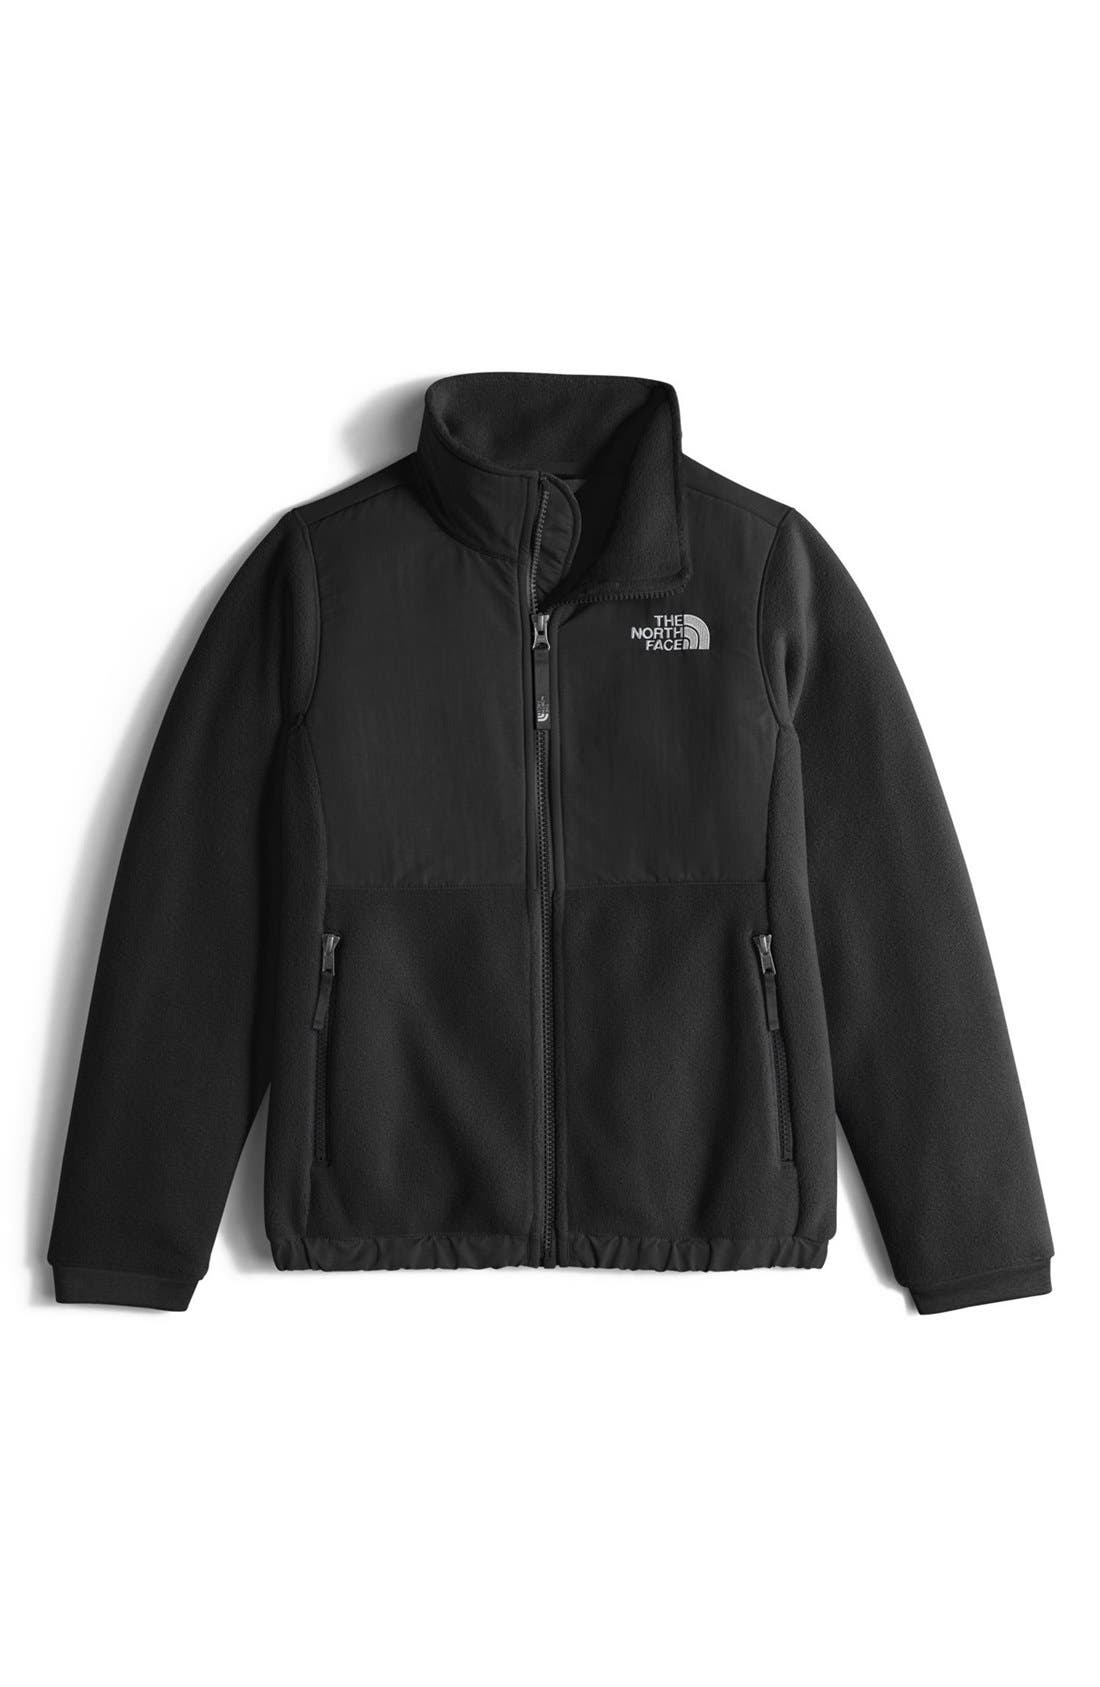 Alternate Image 1 Selected - The North Face 'Denali' Thermal Jacket (Big Girls)